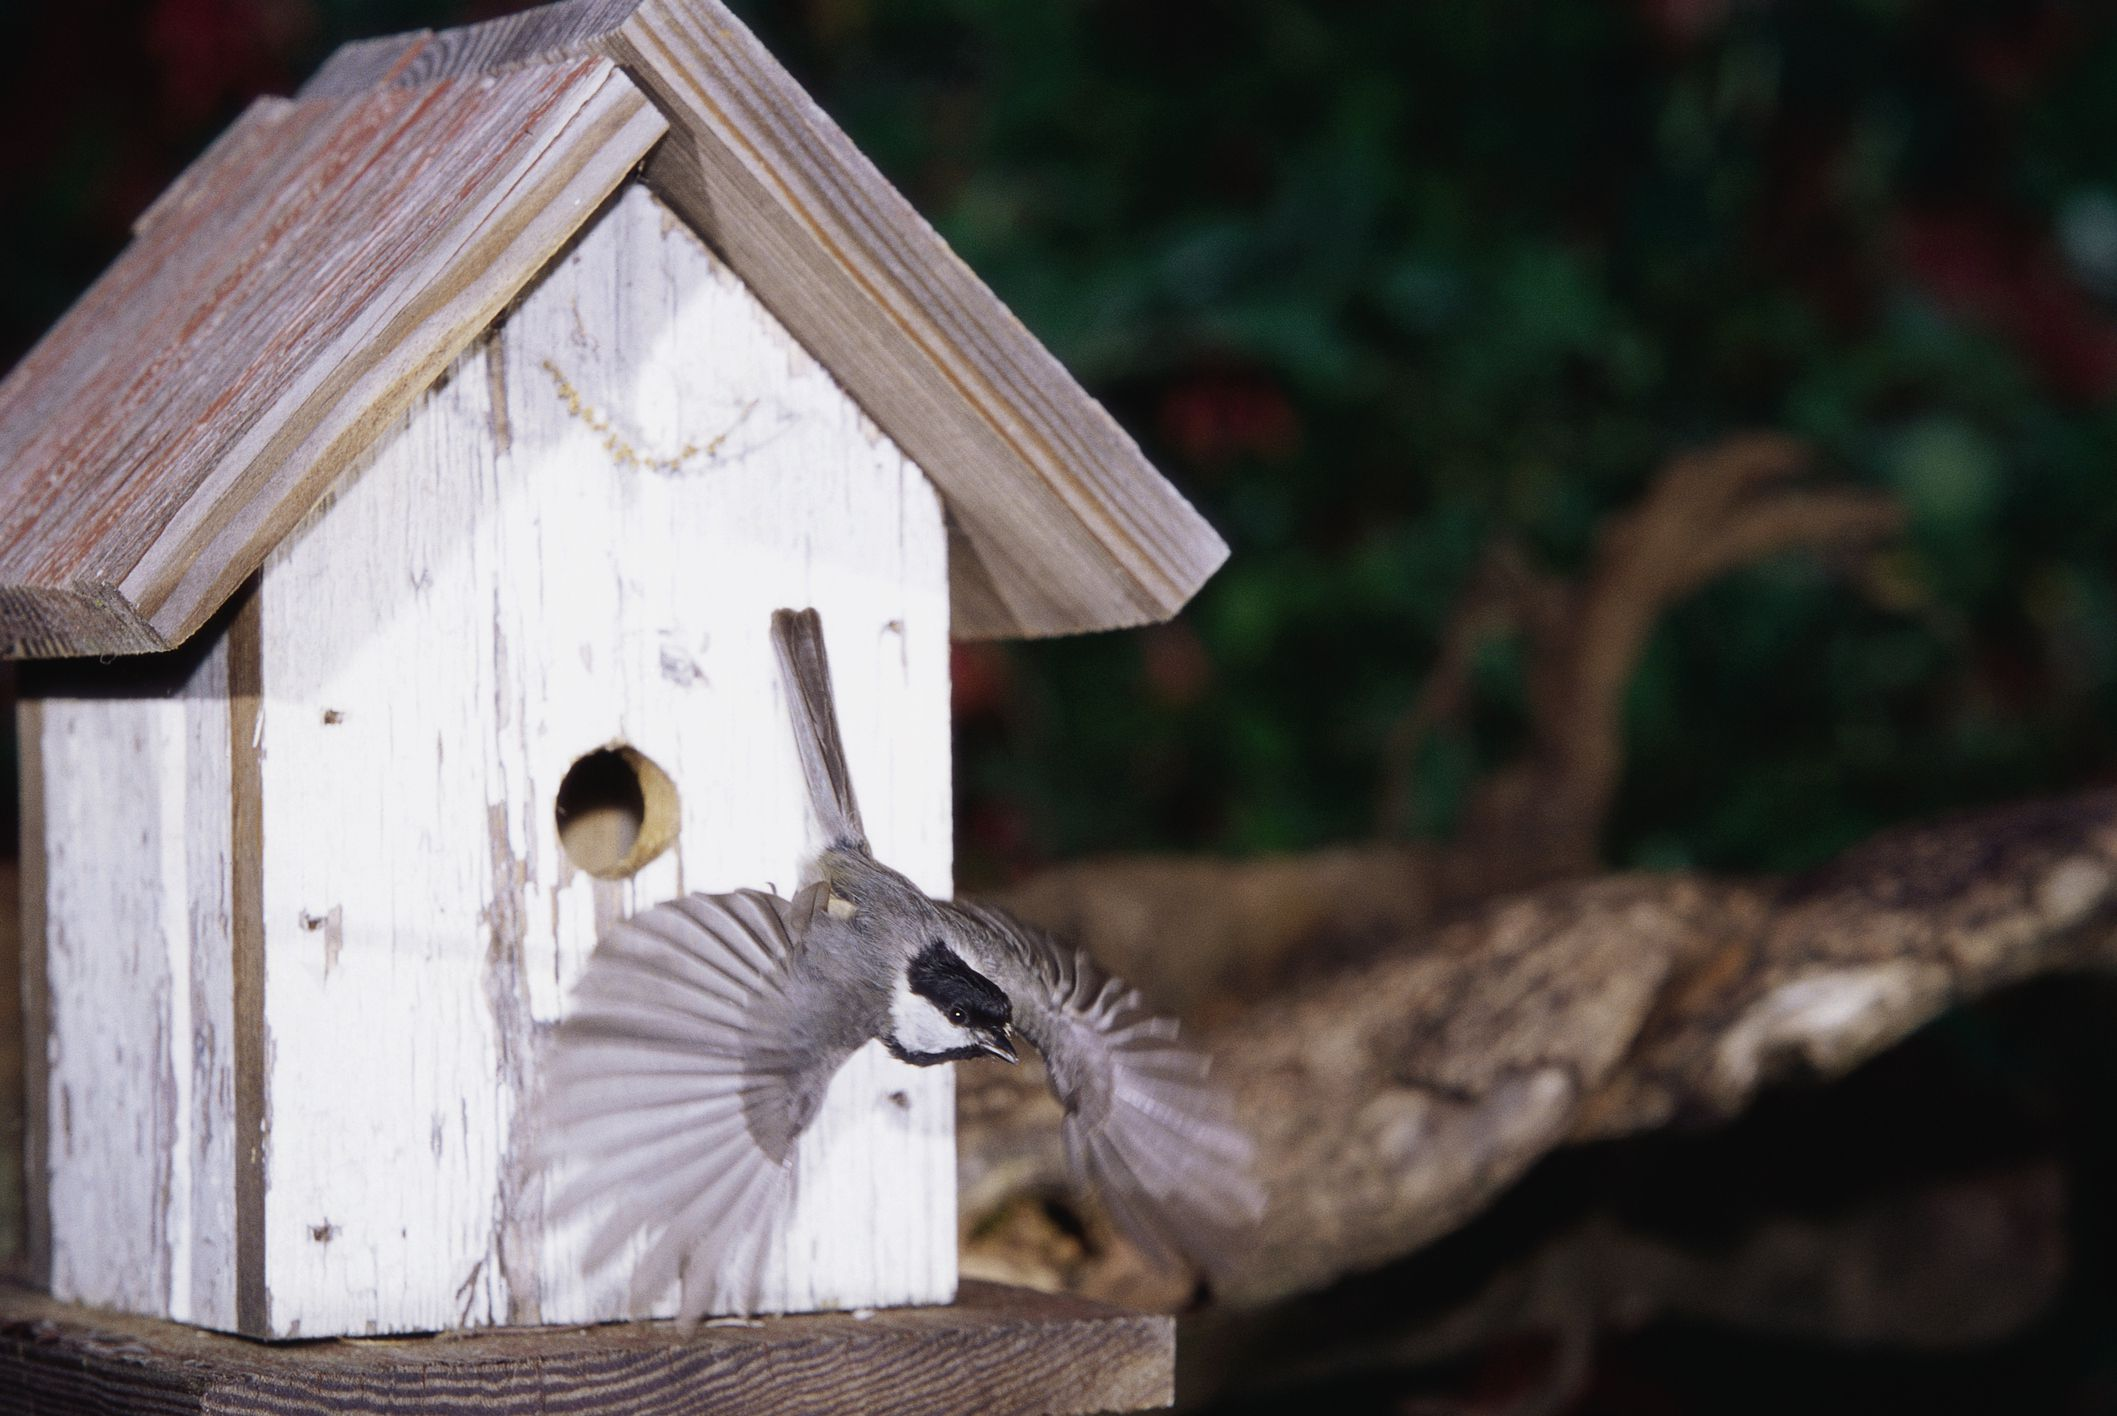 The Best Times to Put Up Bird Houses